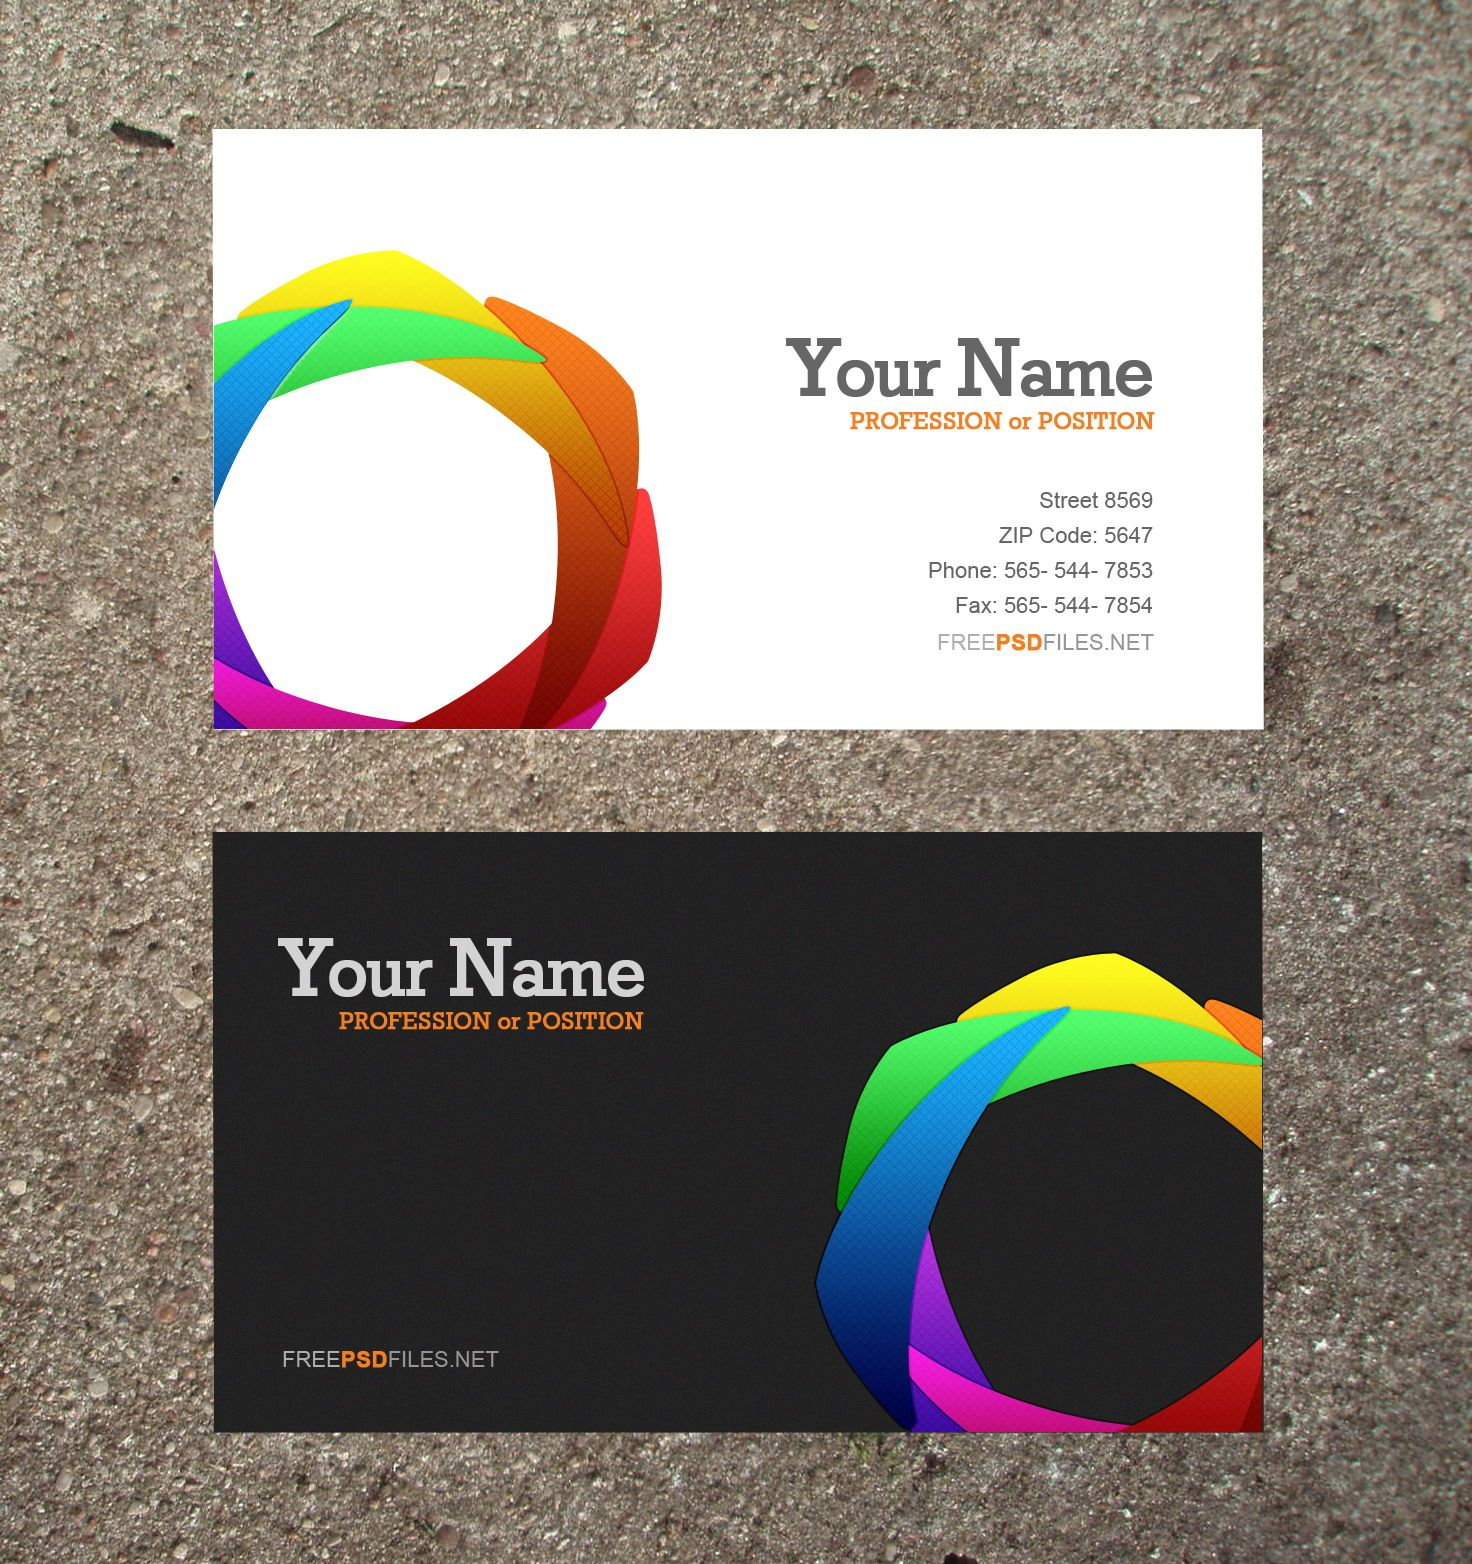 Pin By Anastasia Belomyltseva On Business Cards Pinterest Card - Online business card template